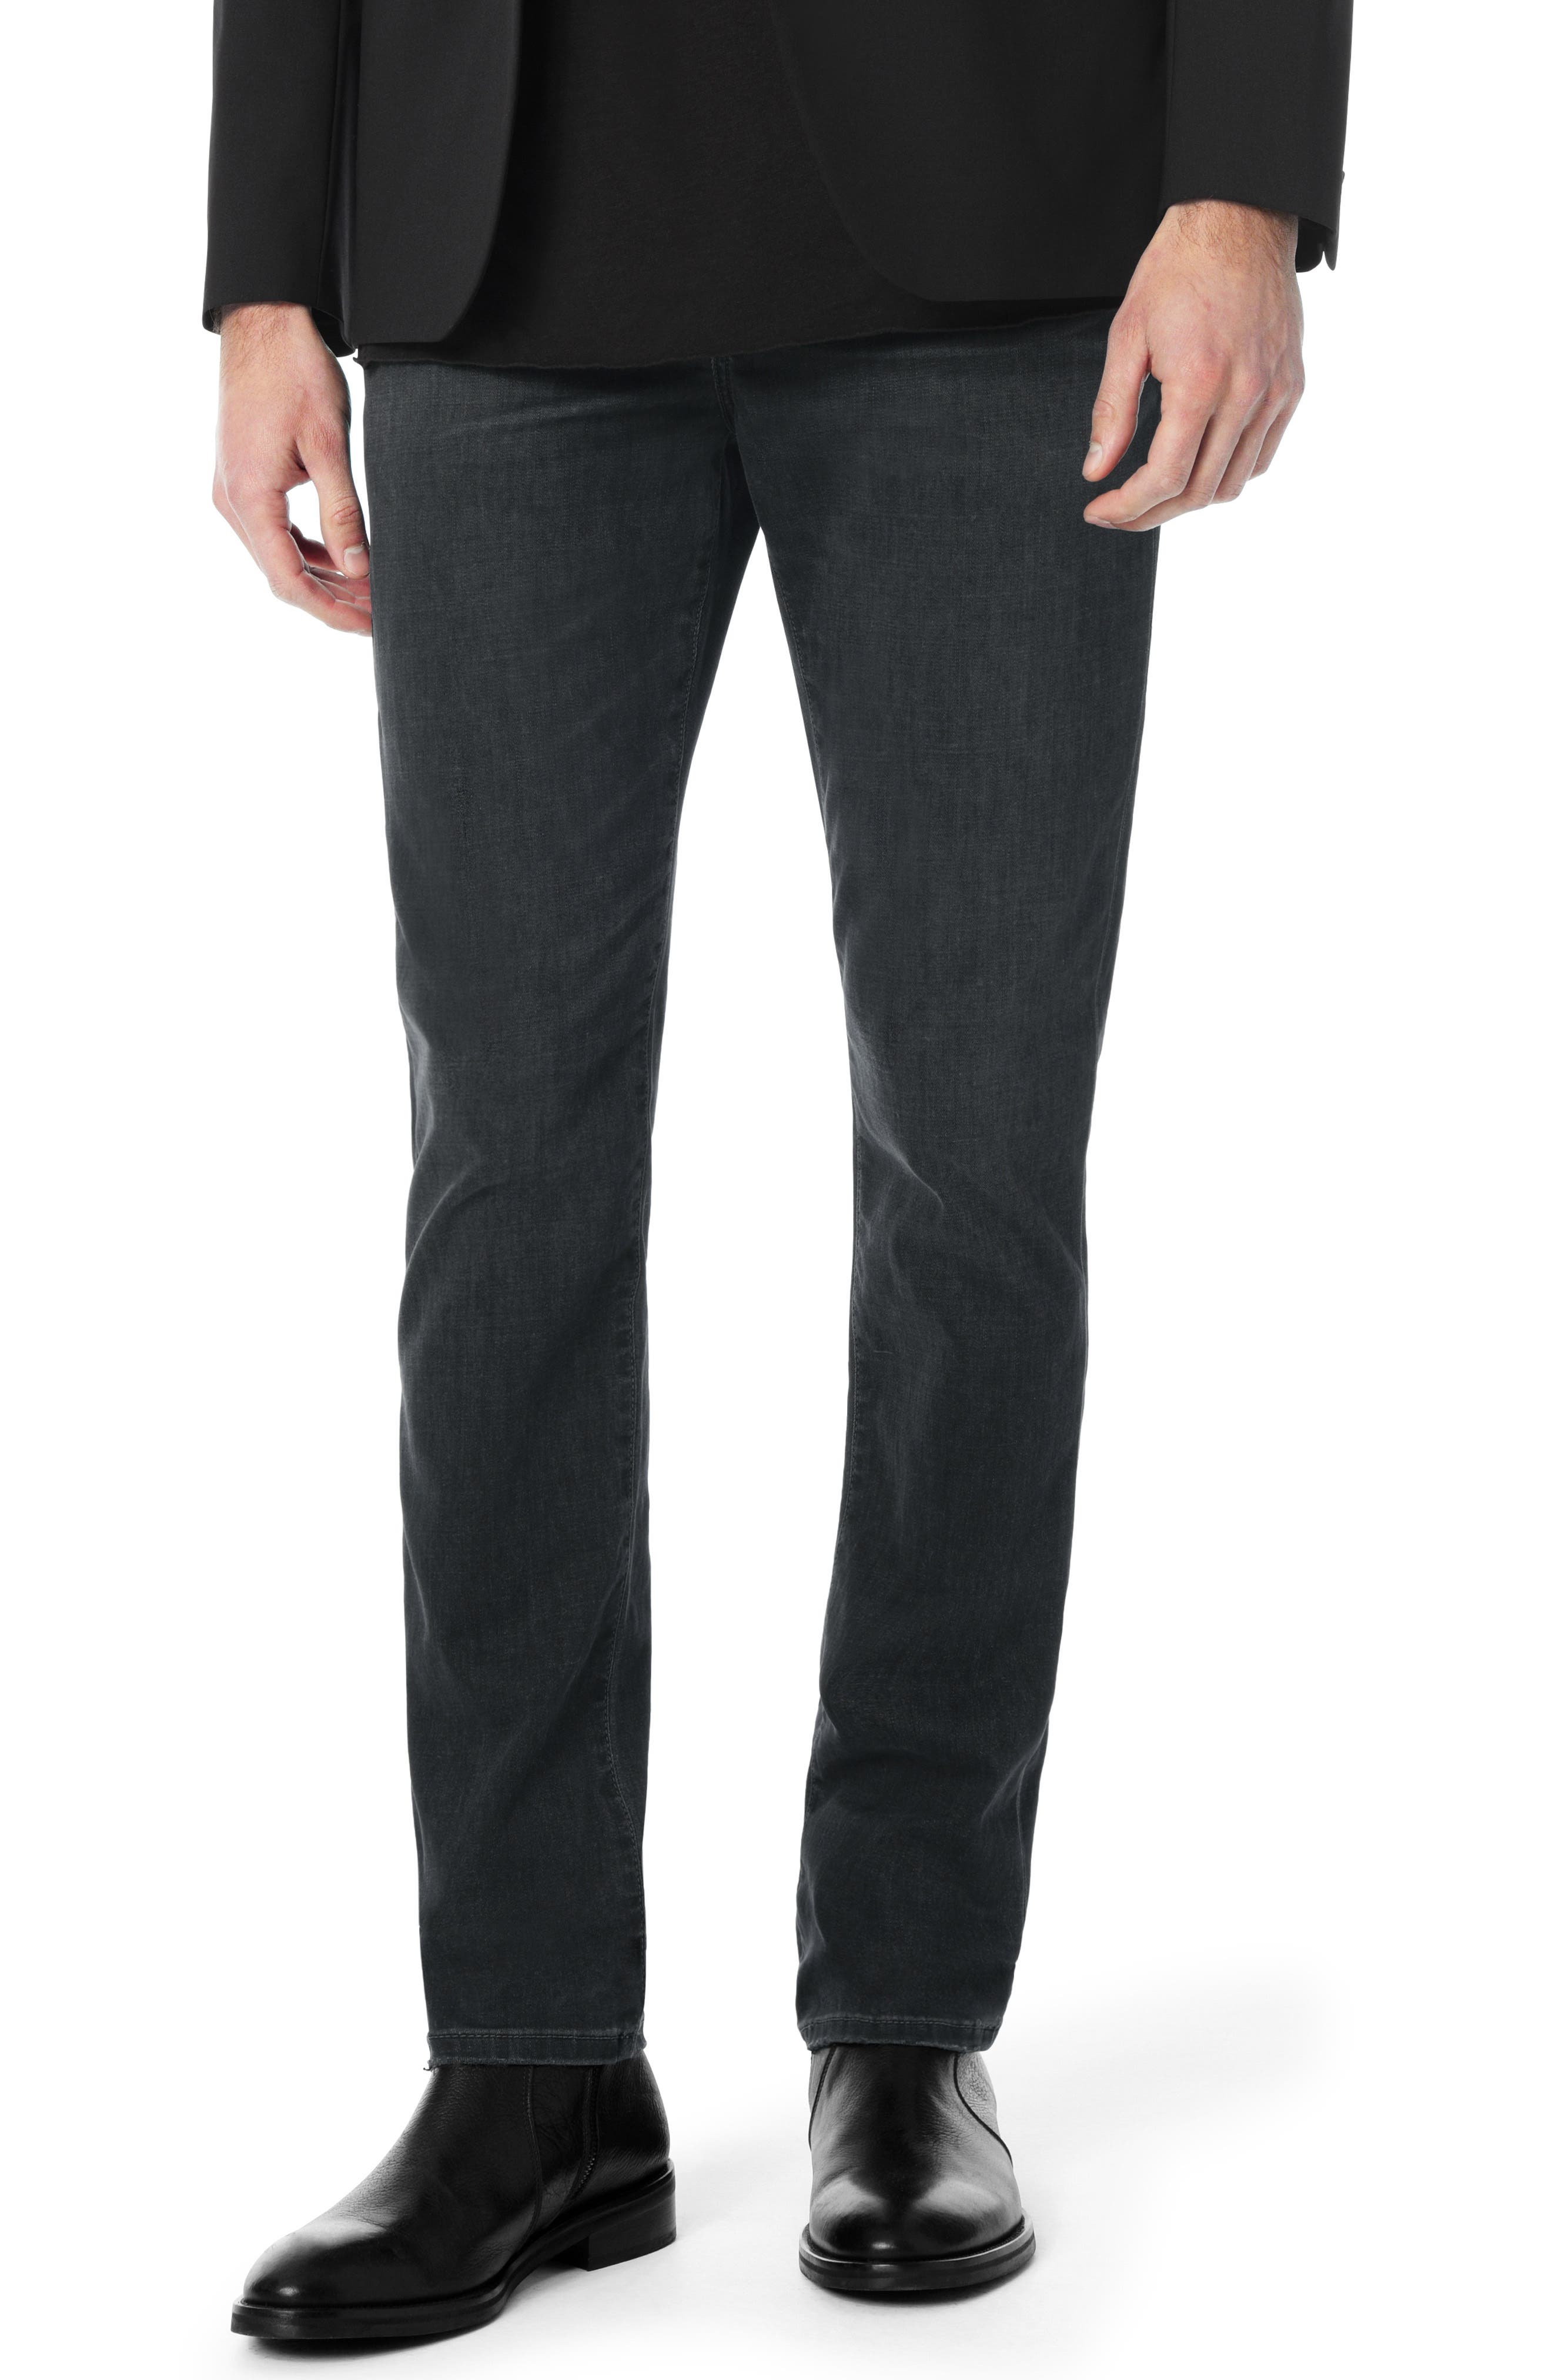 JOE'S JEANS Brixton Straight Slim Fit Jeans In Gable